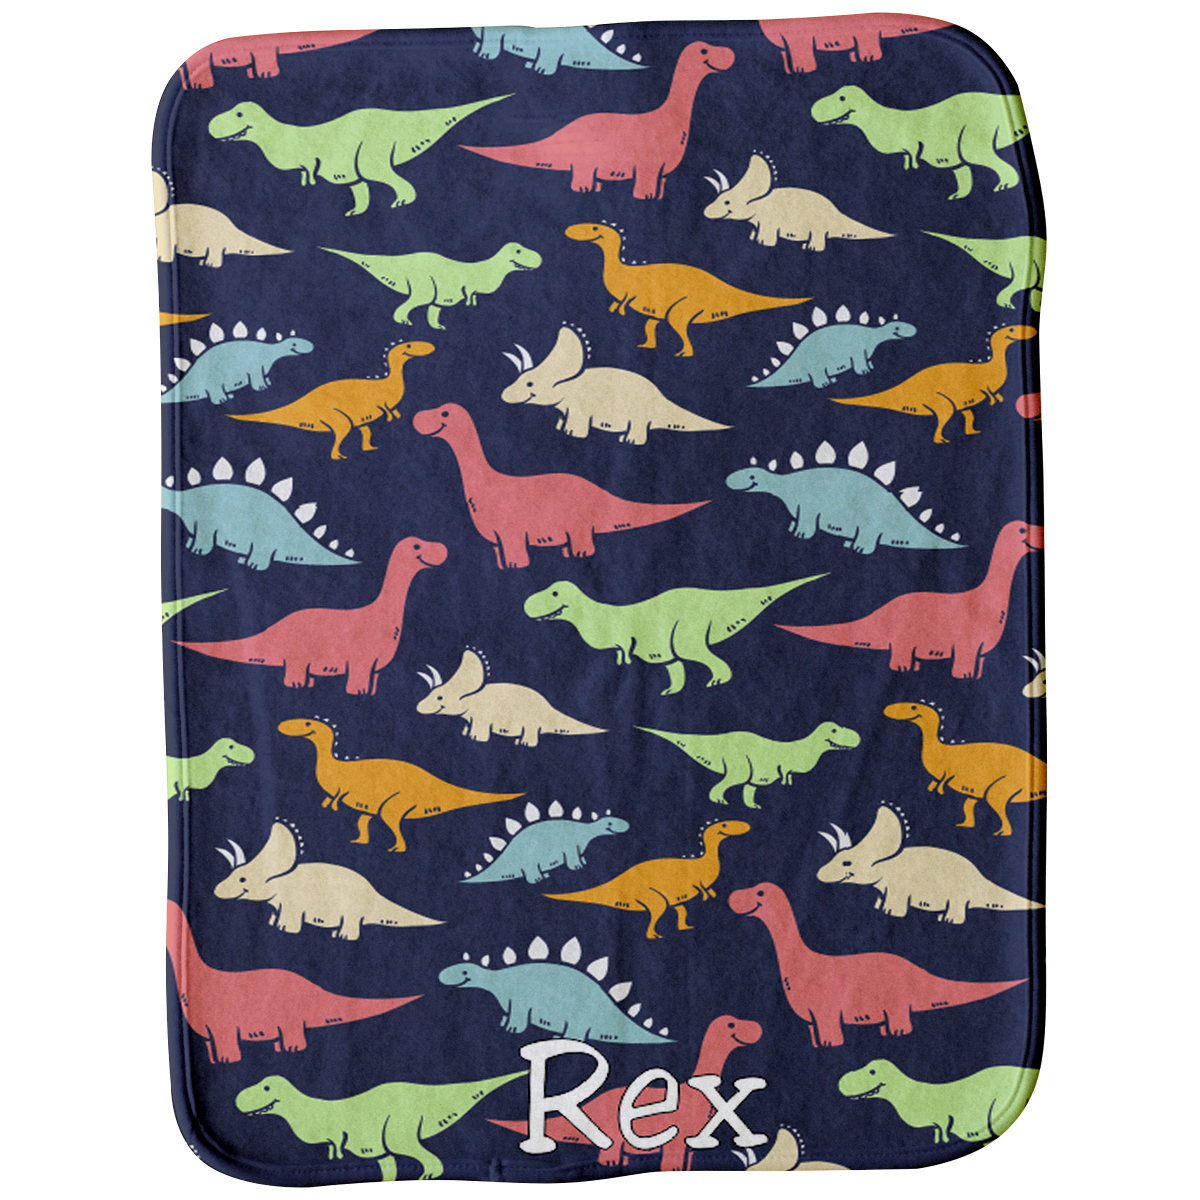 Dancing Dinos Burp Cloth